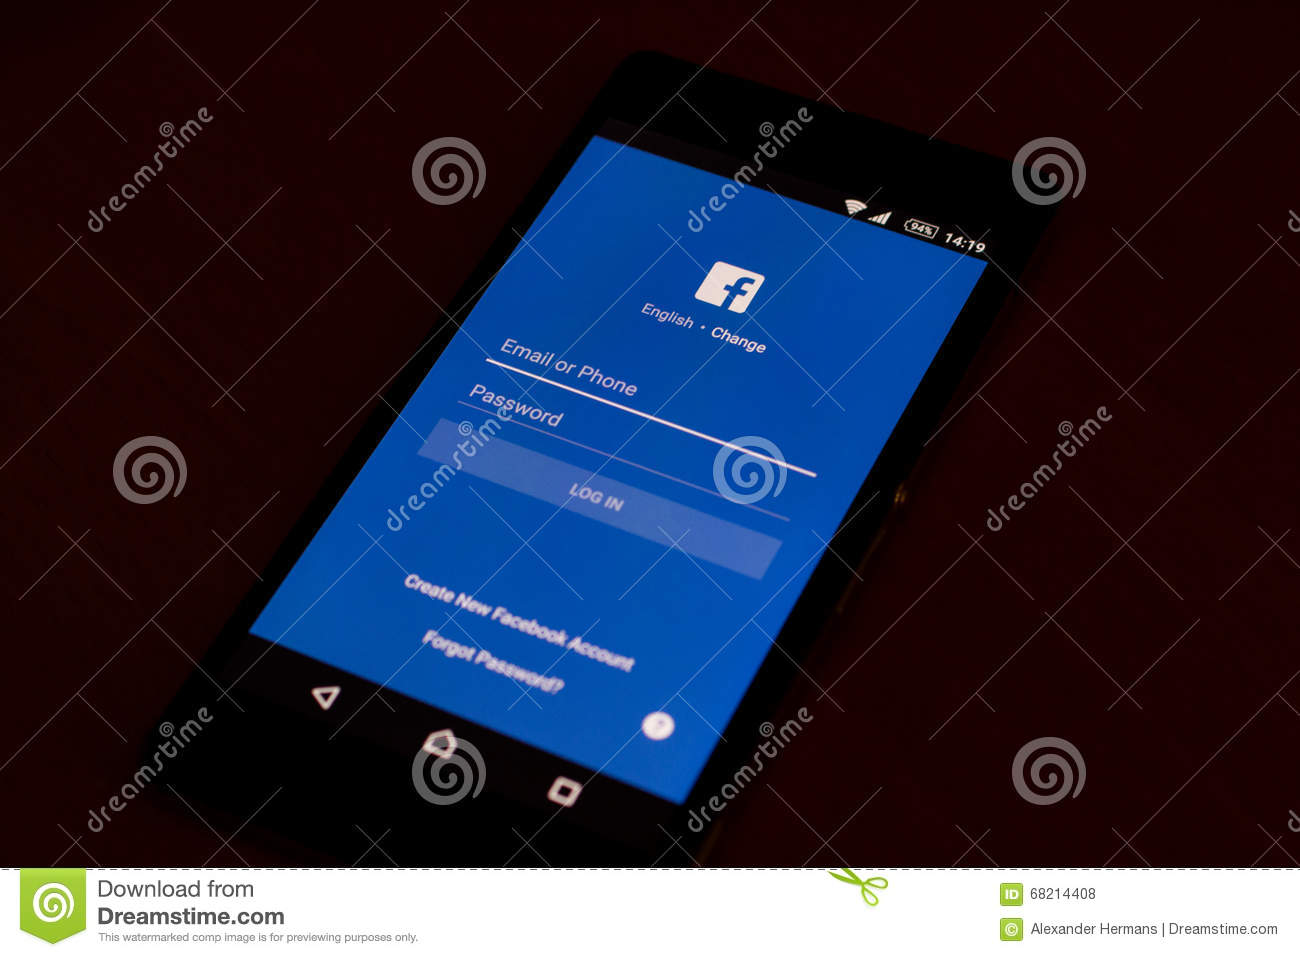 Facebook Application on a modern android smartphone